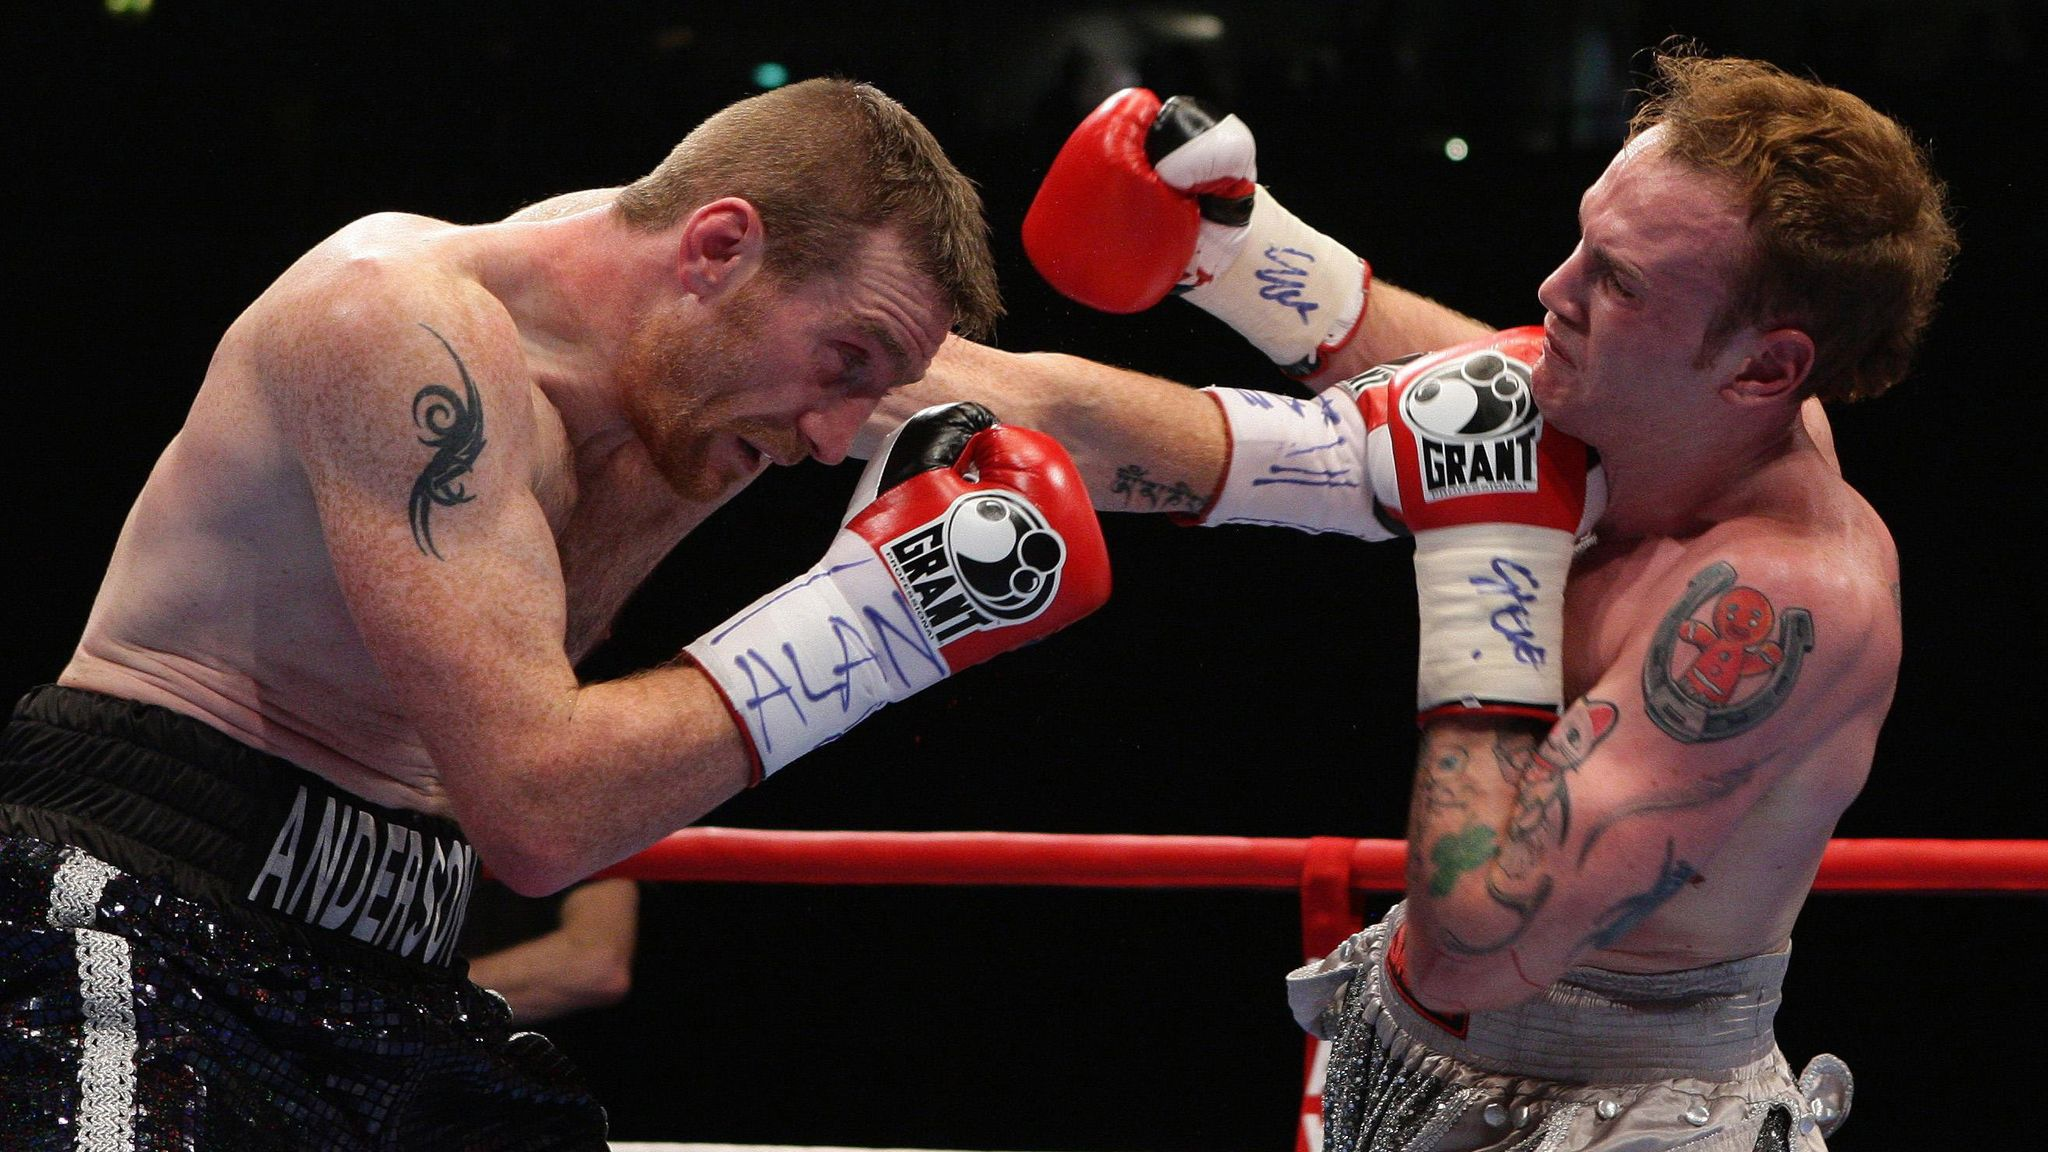 skysports george groves kenny anderson groves 4118642 - George Groves: The Greatest Hits